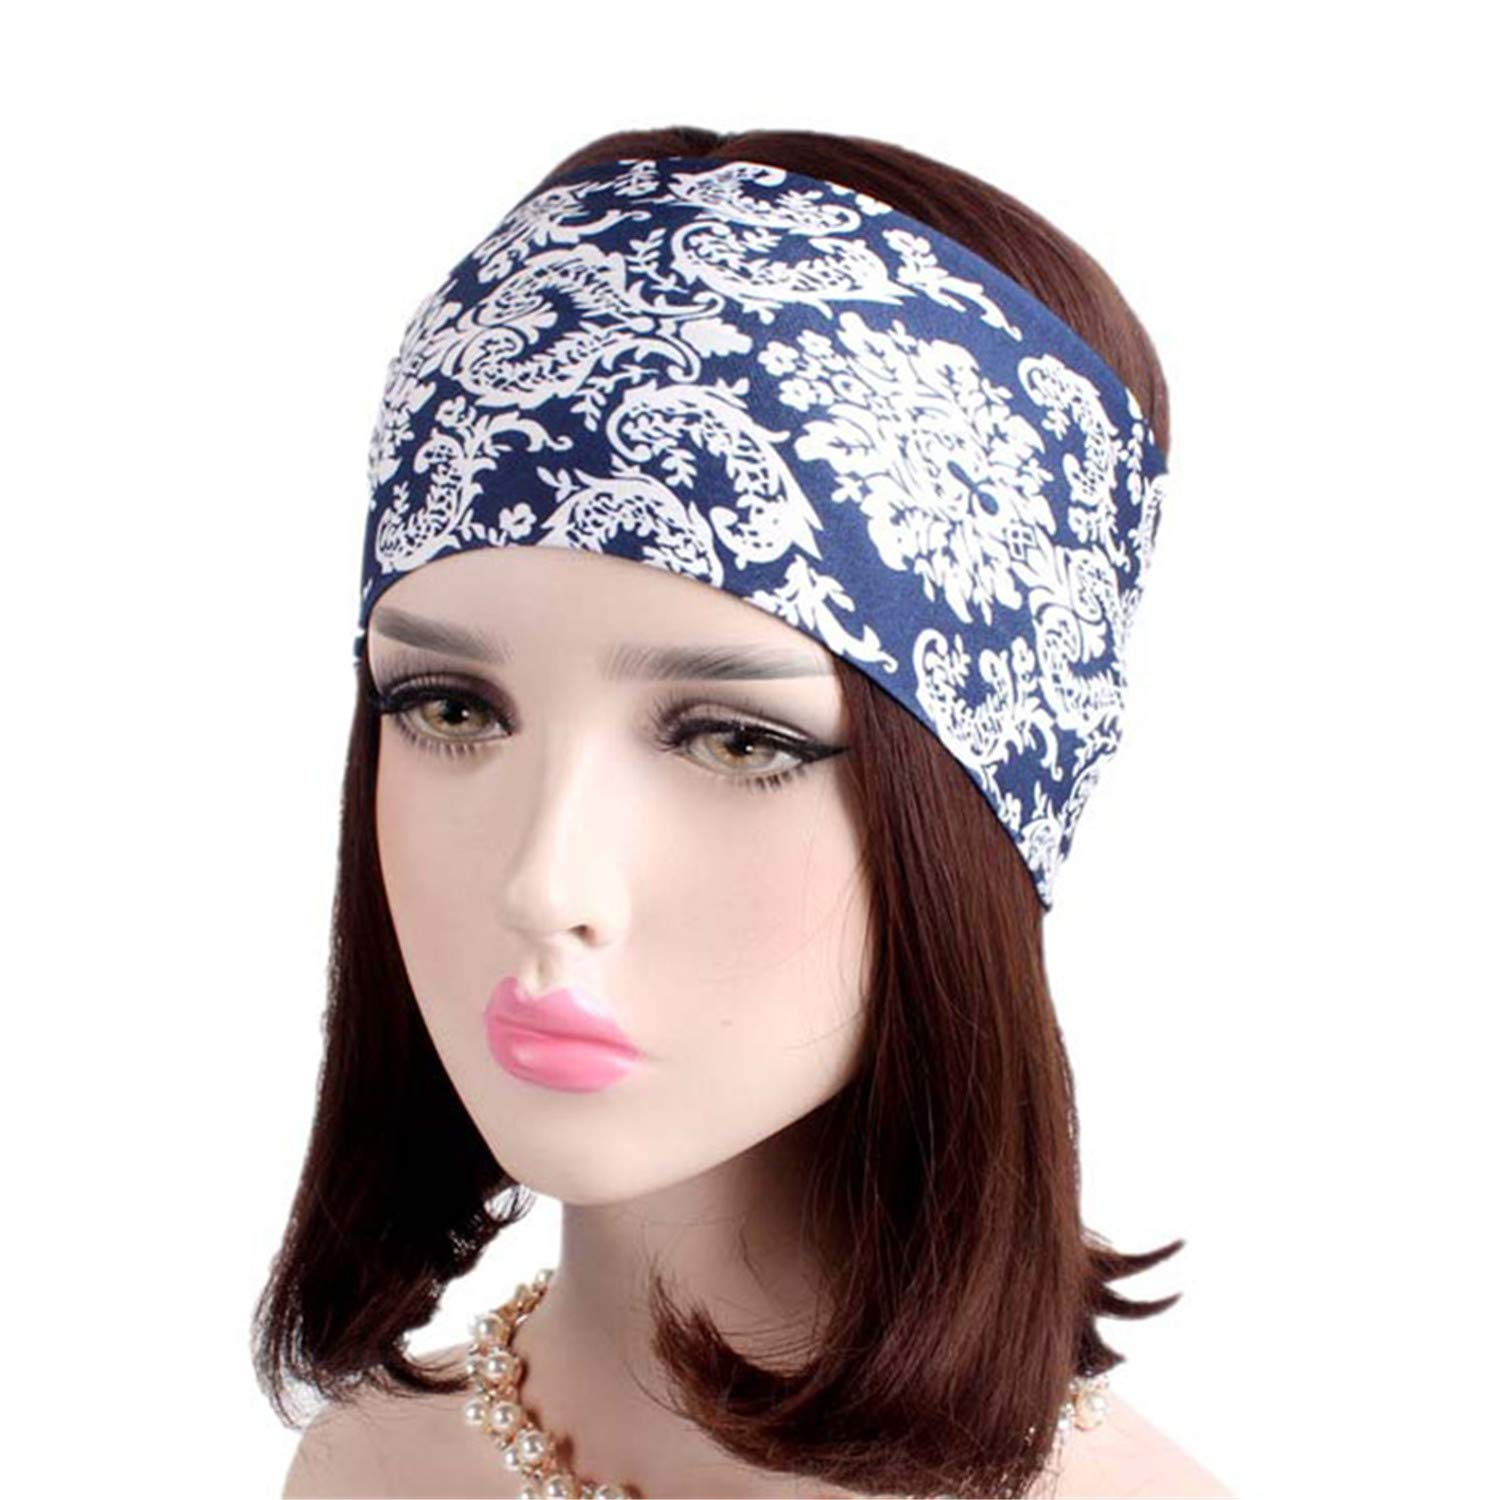 Fashion Wide Cotton Yoga Headband For Women Adult Leopard Dots Striped Printed Fabric Hairband Turban Headwrap Hair Accessories Apparel Accessories Girl's Accessories